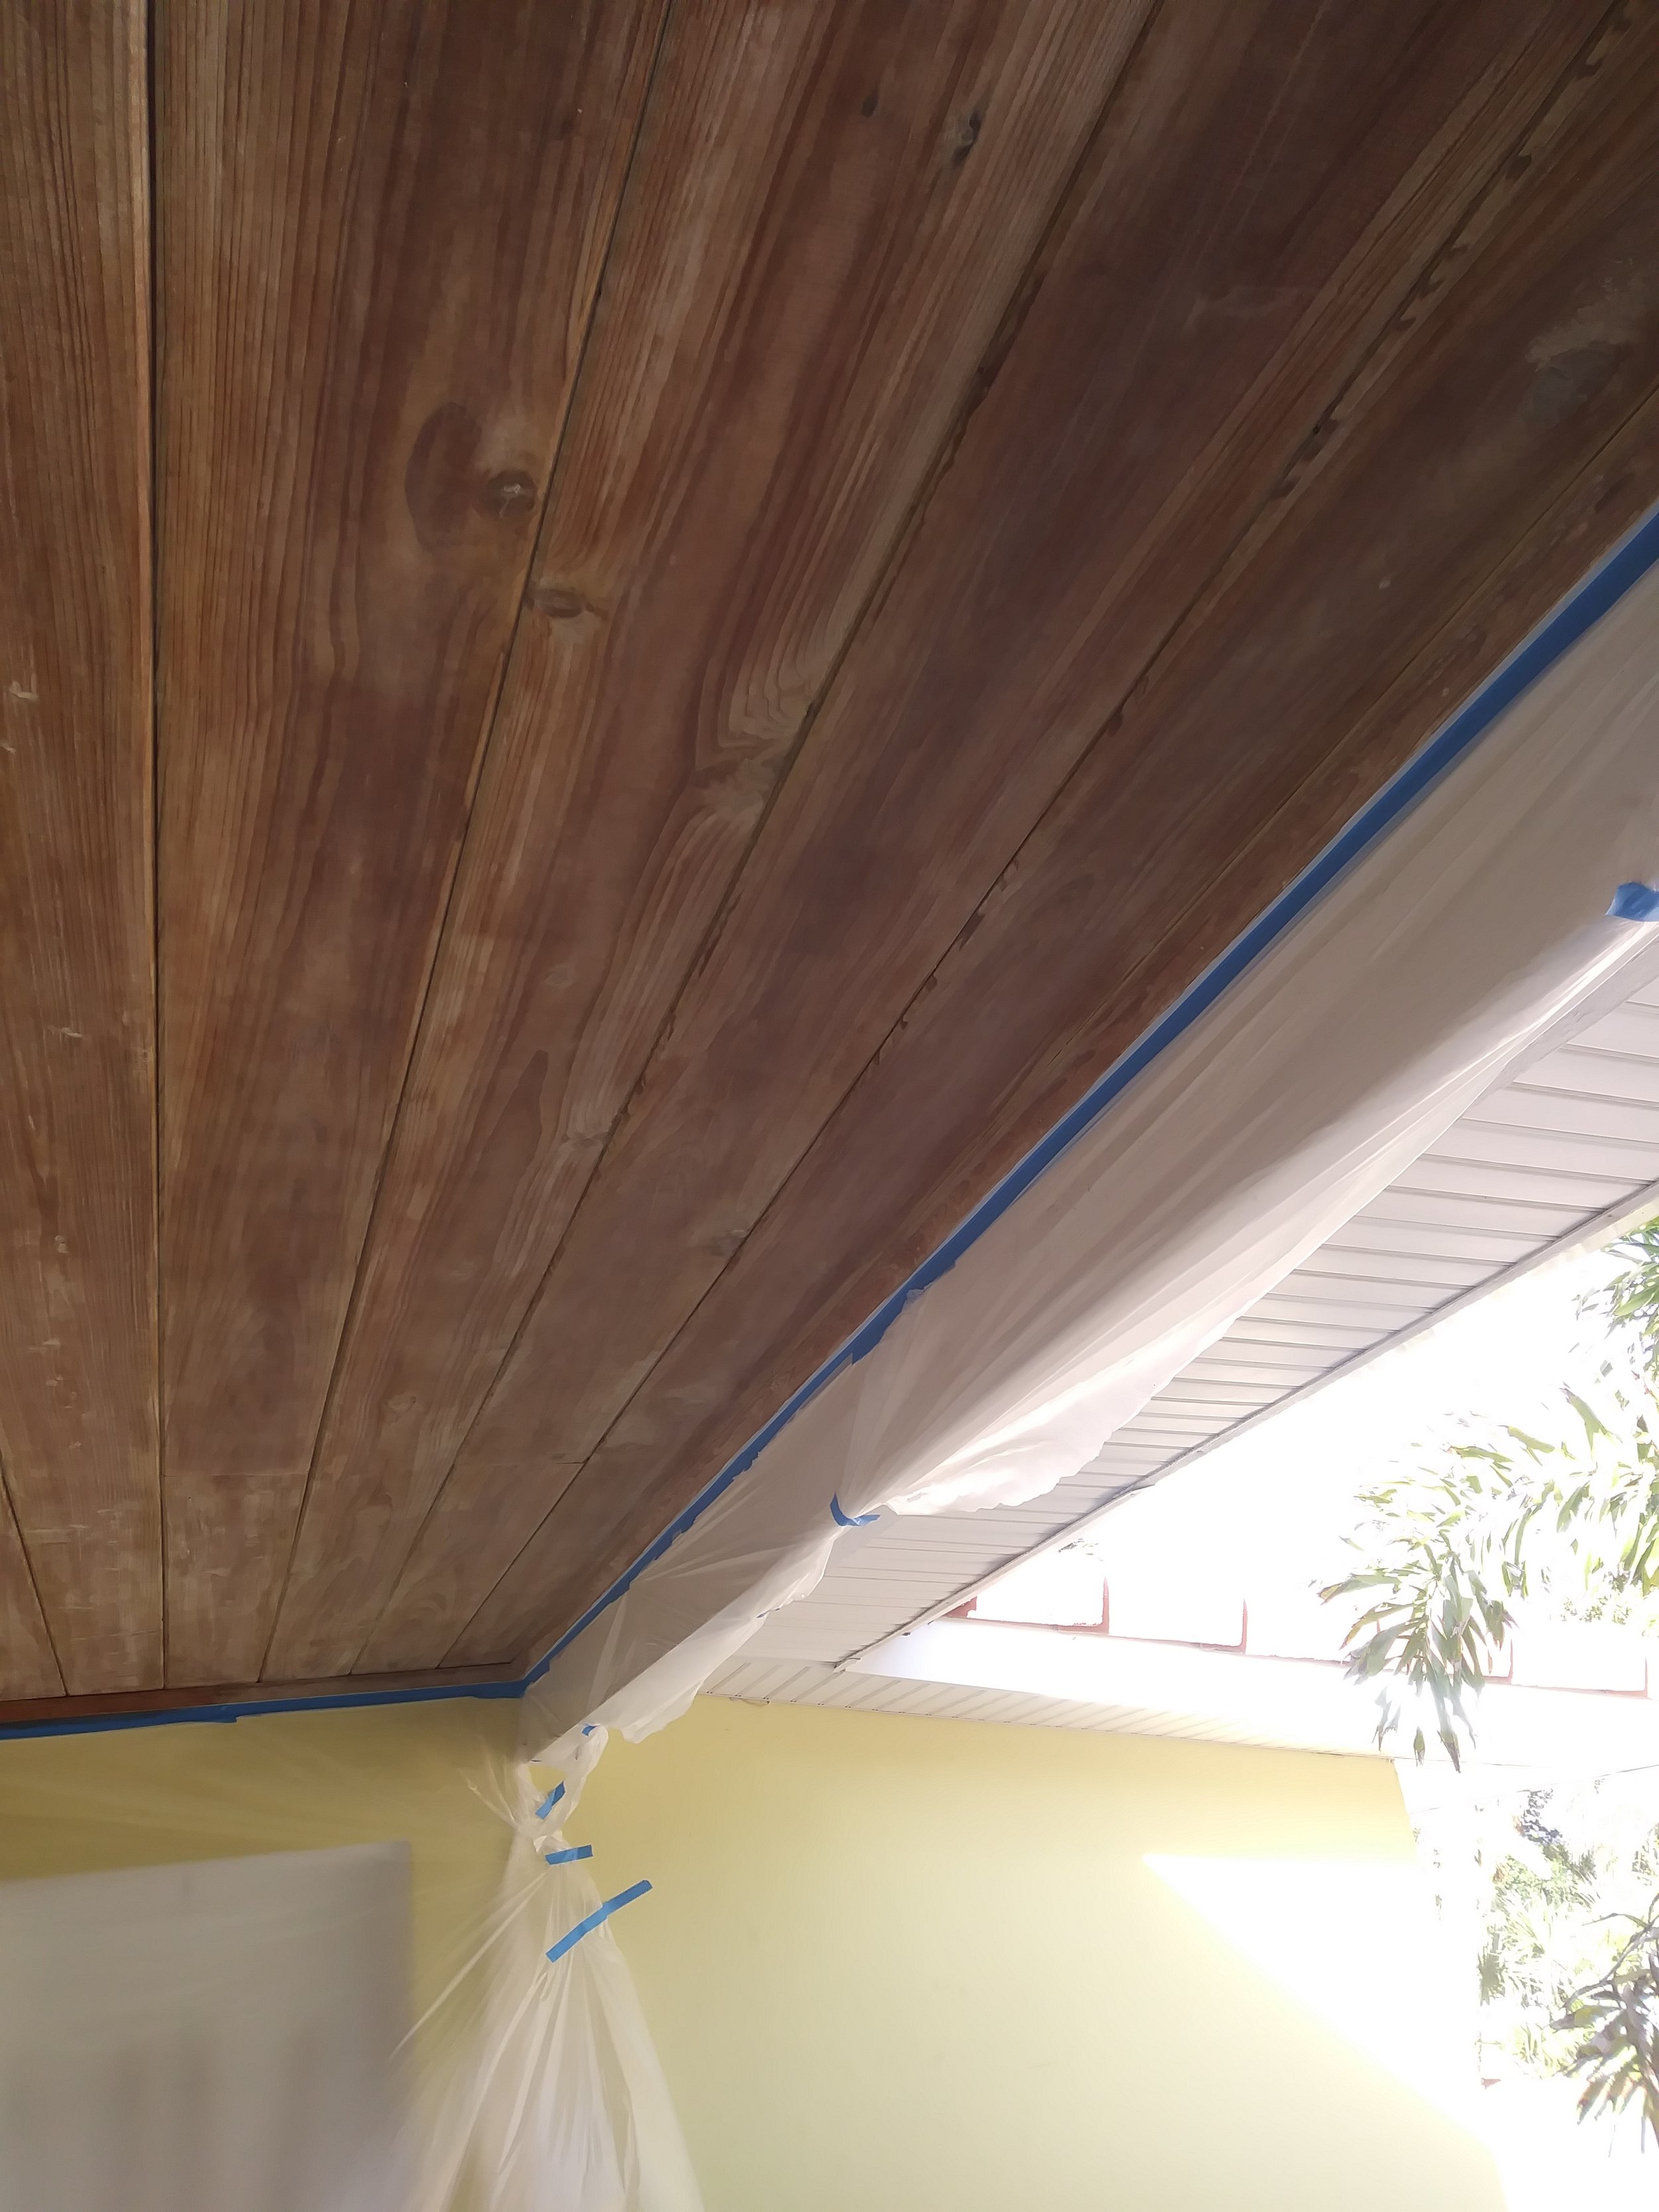 Tongue And Groove Ceiling Stain In Indialantic Fl Customize Brevard Interior And Exterior Painting Serving Brevard County Fl